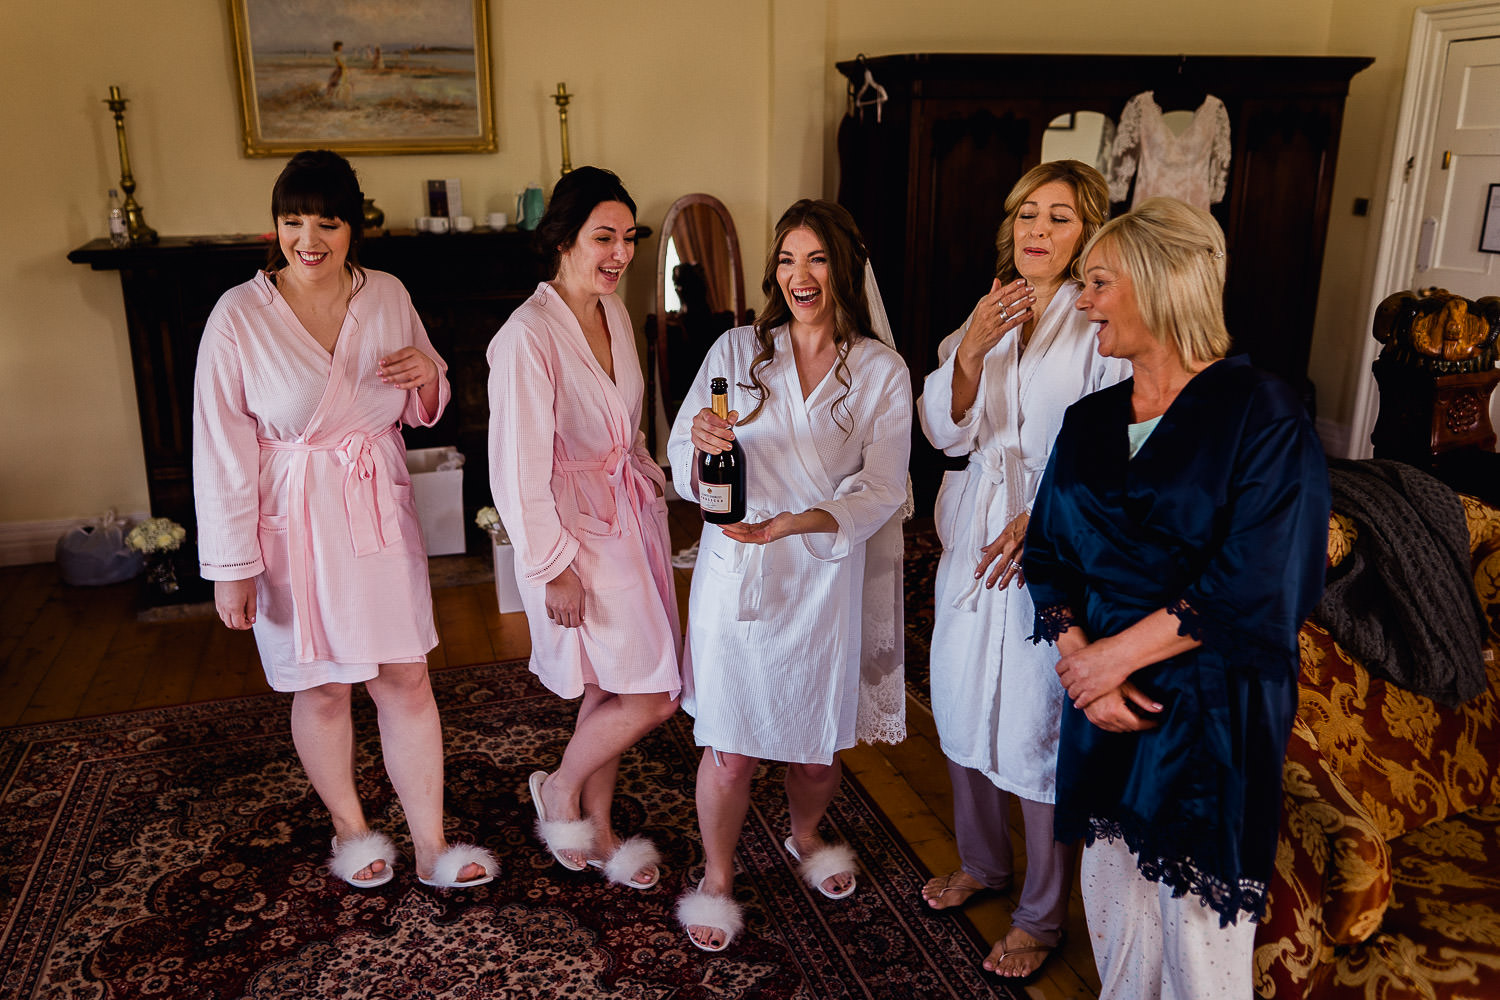 Bridal party opening a bottle champagne